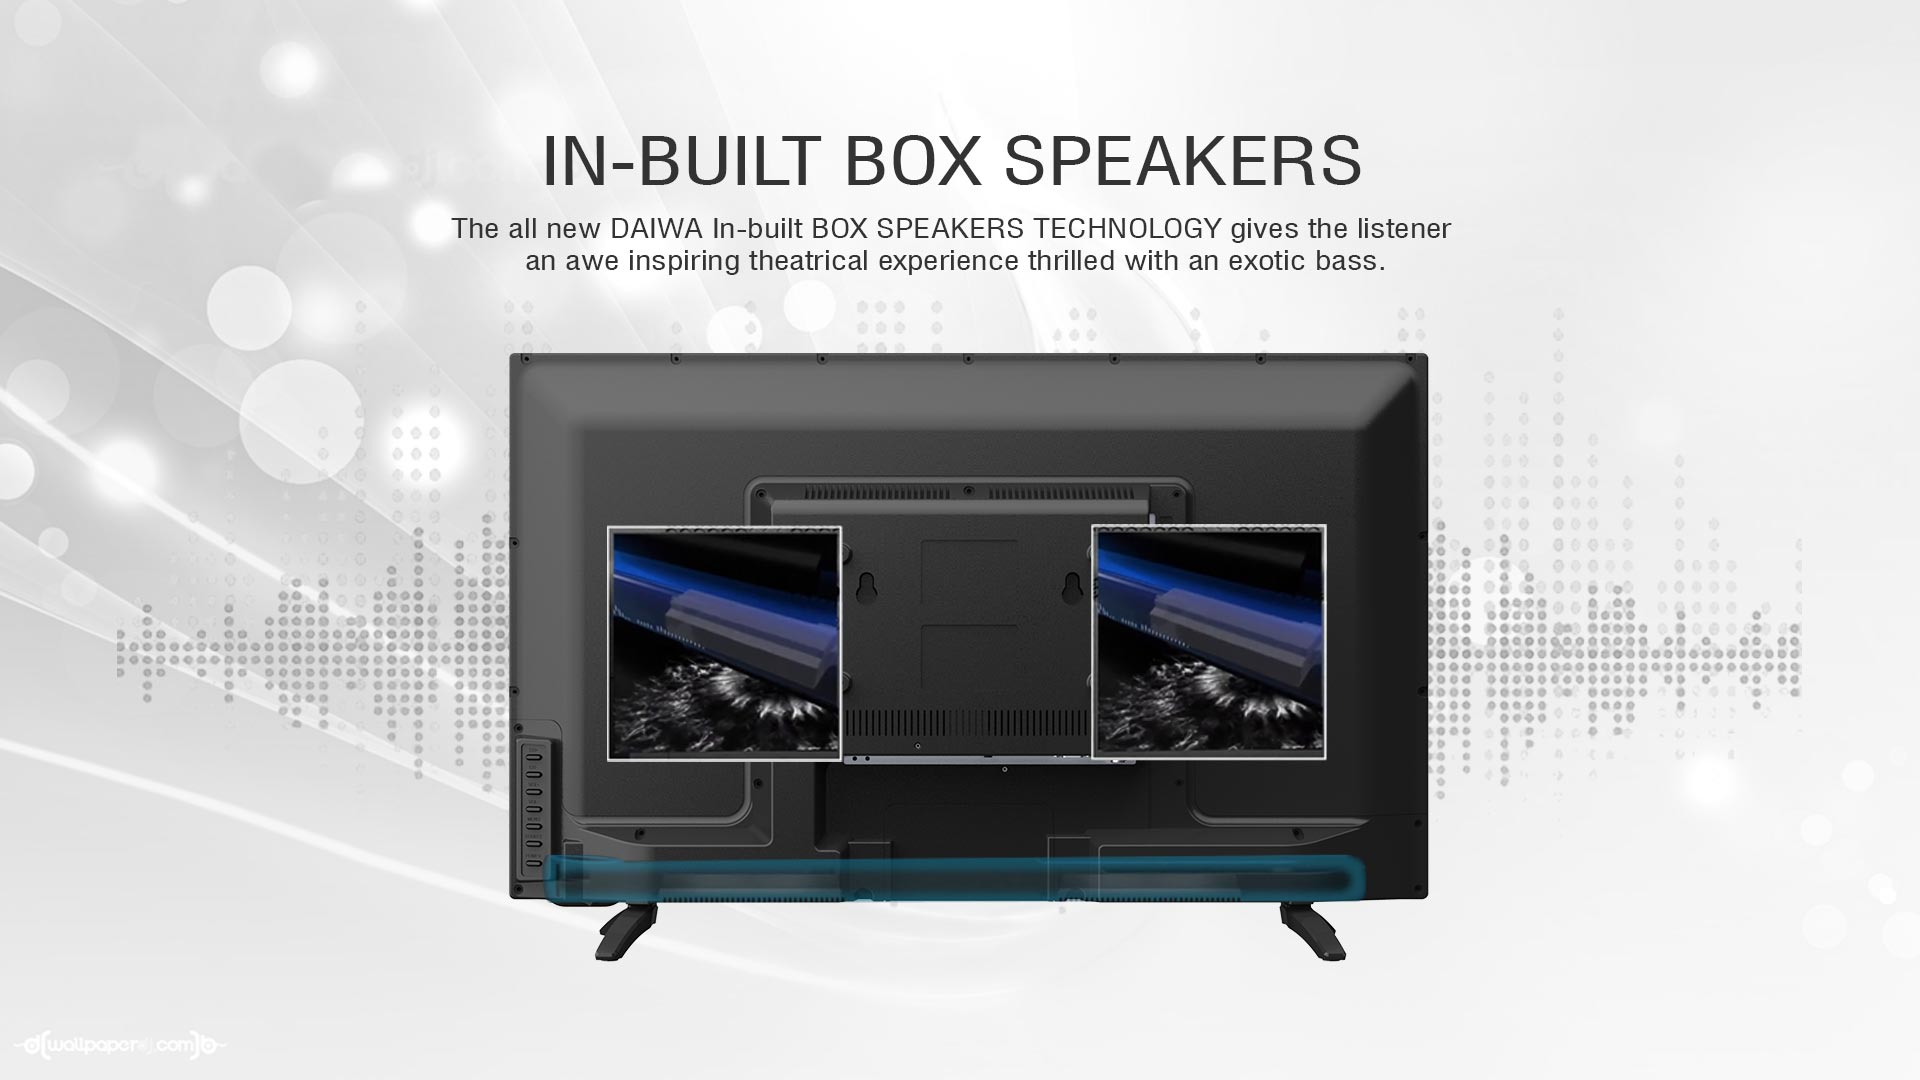 Smart Led Tv With 8gb Internal Storage Screen Capture Daiwa Schematic Diagram Free Download Wiring In Built Box Speakers